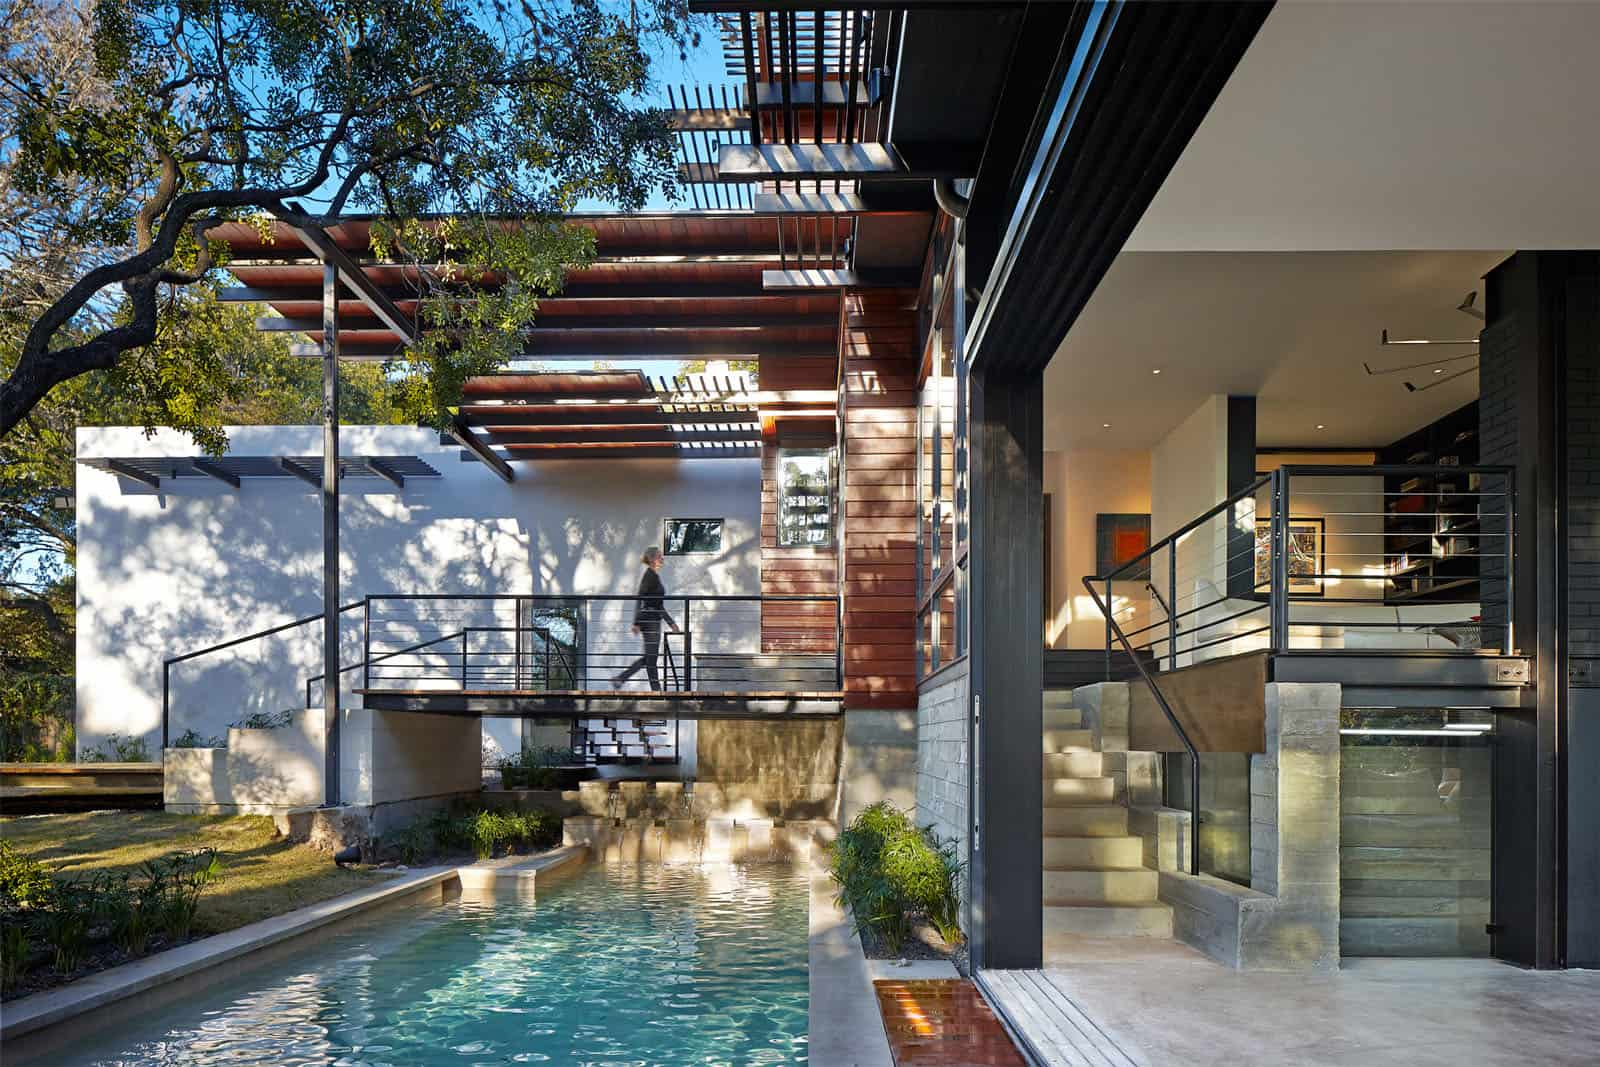 Rancher Morphed into Sustainable 2Storey House with